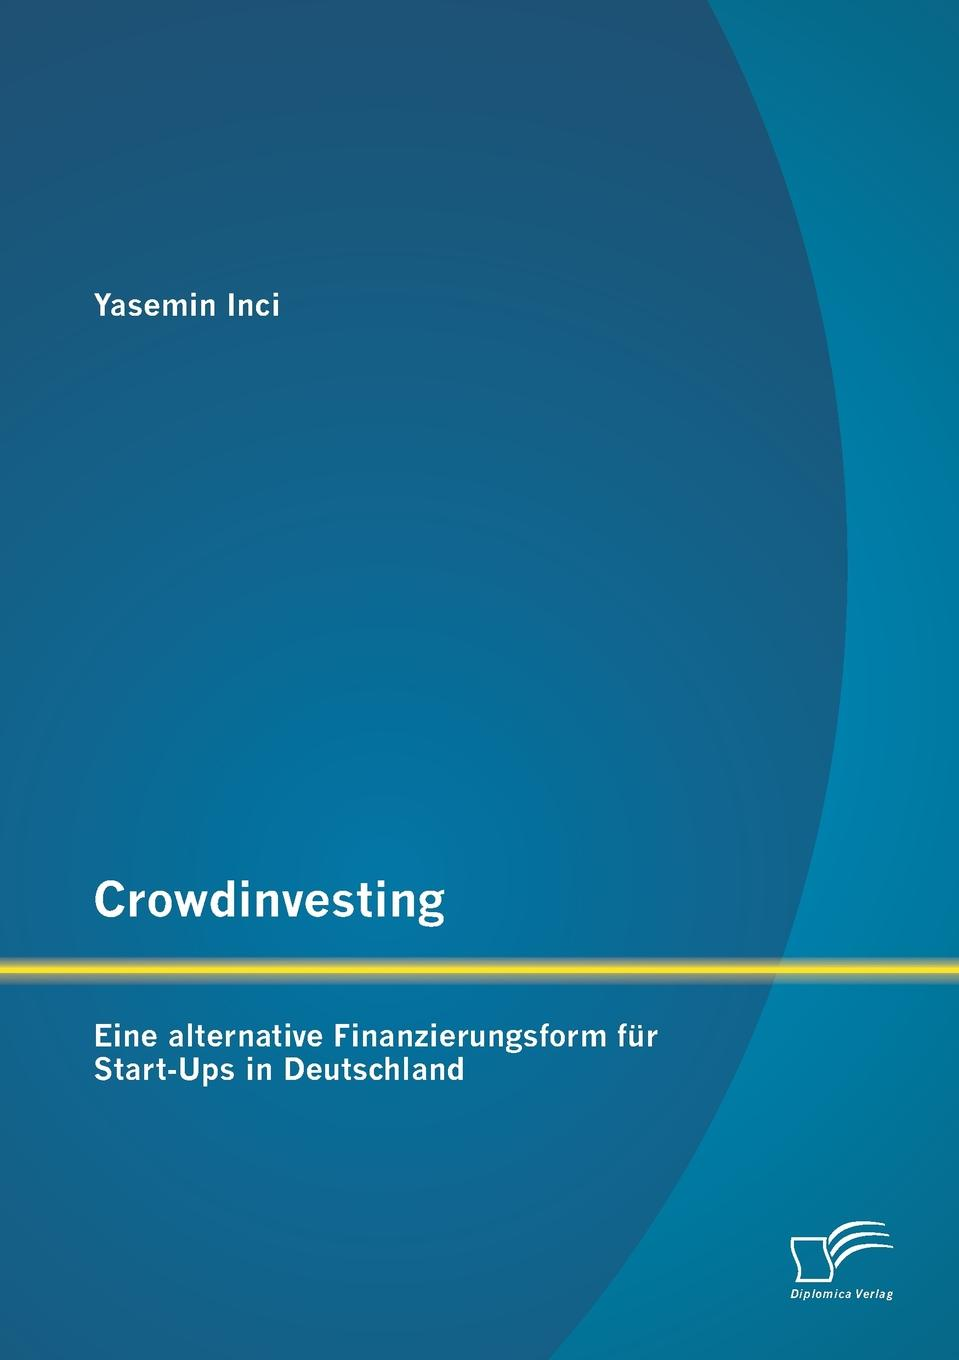 Yasemin Inci Crowdinvesting. Eine alternative Finanzierungsform fur Start-Ups in Deutschland niklas tober einfuhrung ins crowdinvesting chancen und risiken aus sicht der akteure